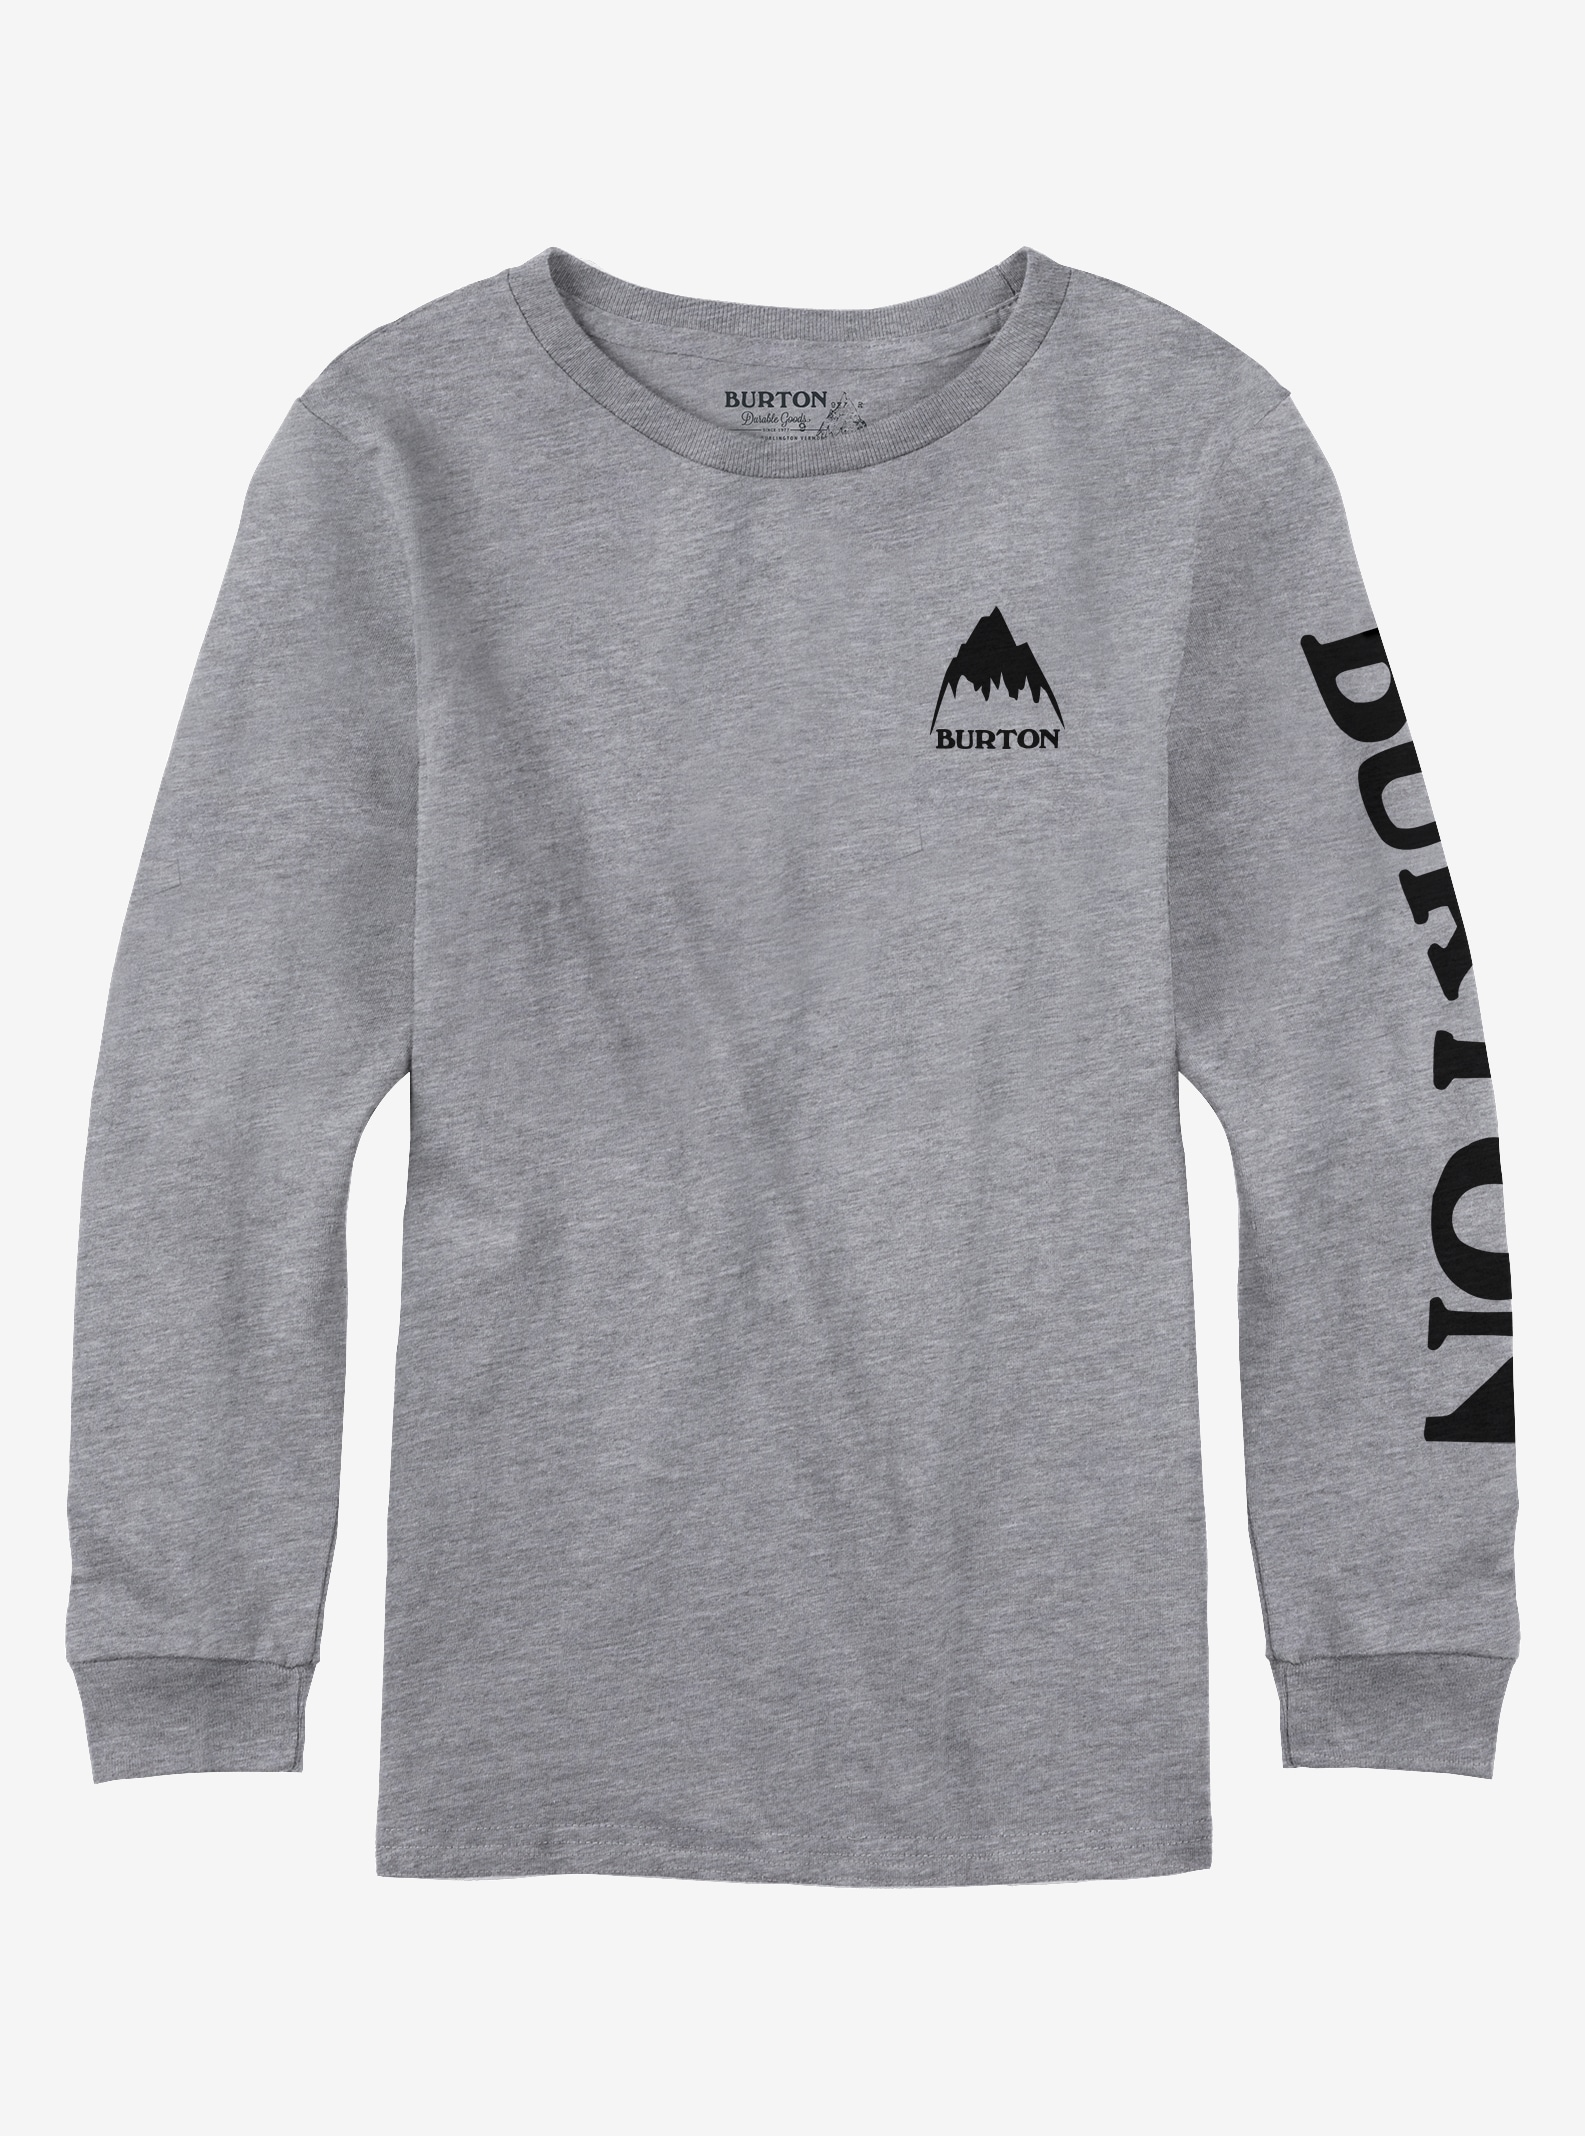 Boys' Burton Elite Long Sleeve T Shirt shown in Gray Heather